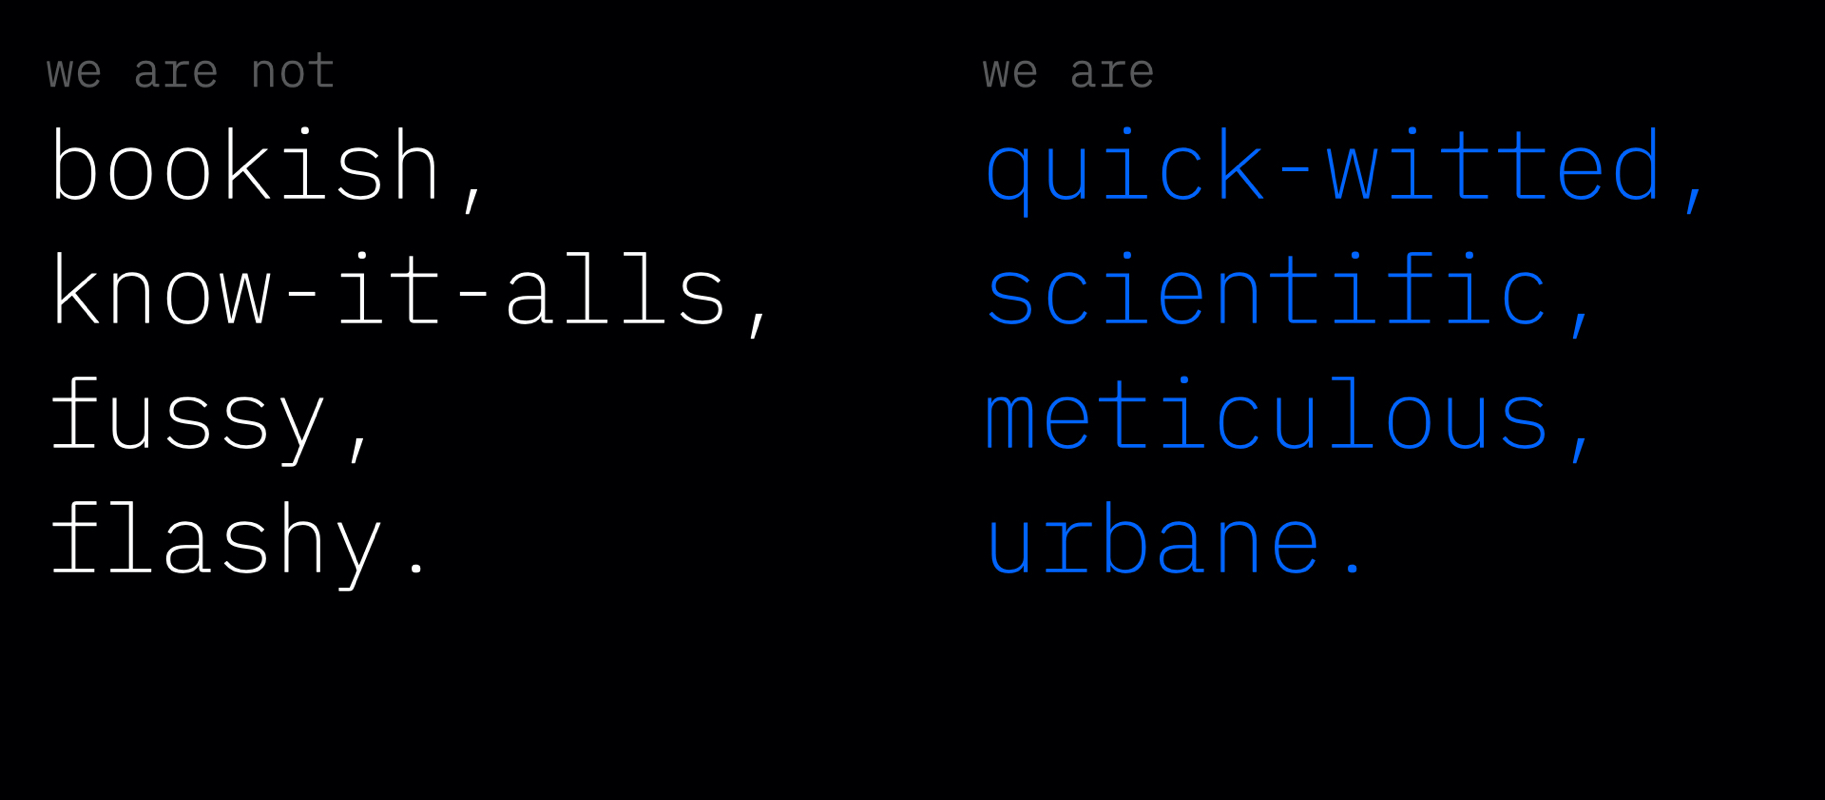 We are not bookish, know-it-alls, fussy, flashy. we are quick-witted, scientific, meticulous, urbane.